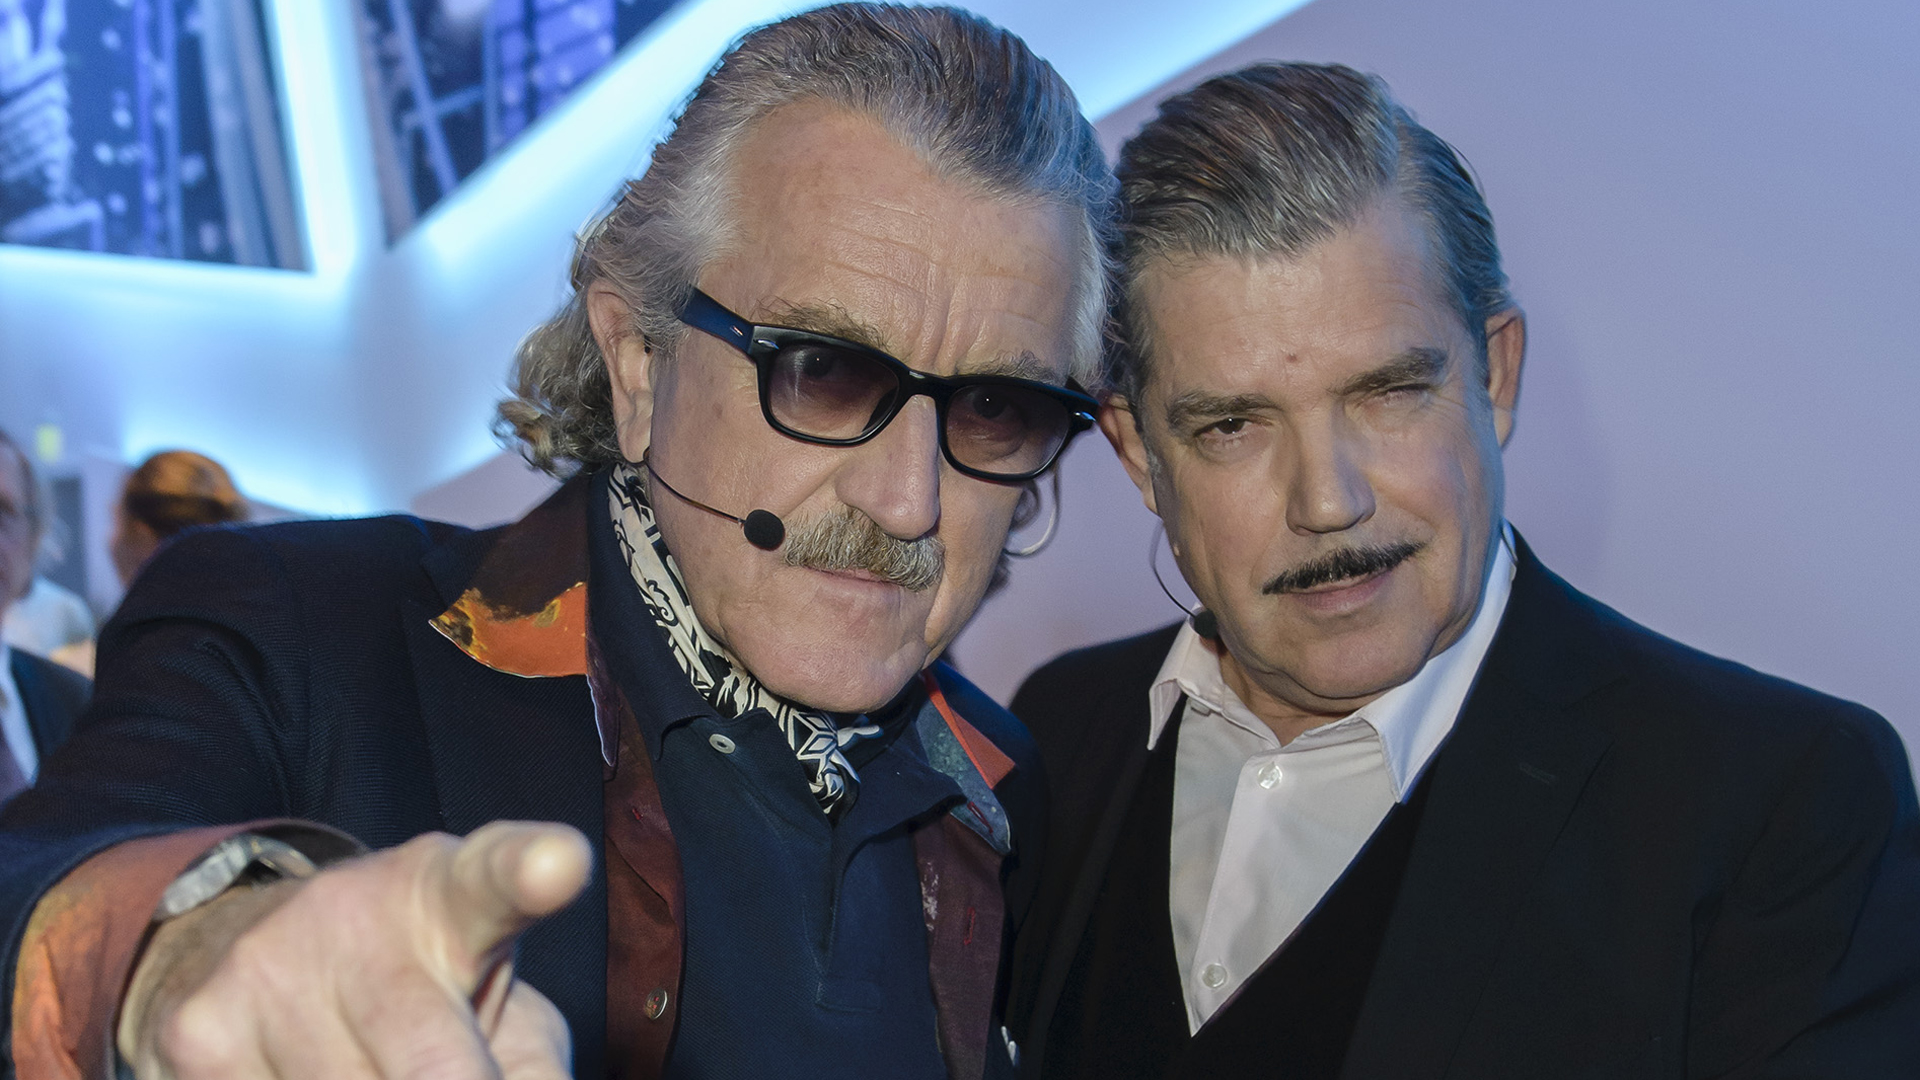 BERLIN, GERMANY - MARCH 08: Dieter Meier (L) and Boris Blank of the group Yellow attend the 'Electrified! The Late Night' at